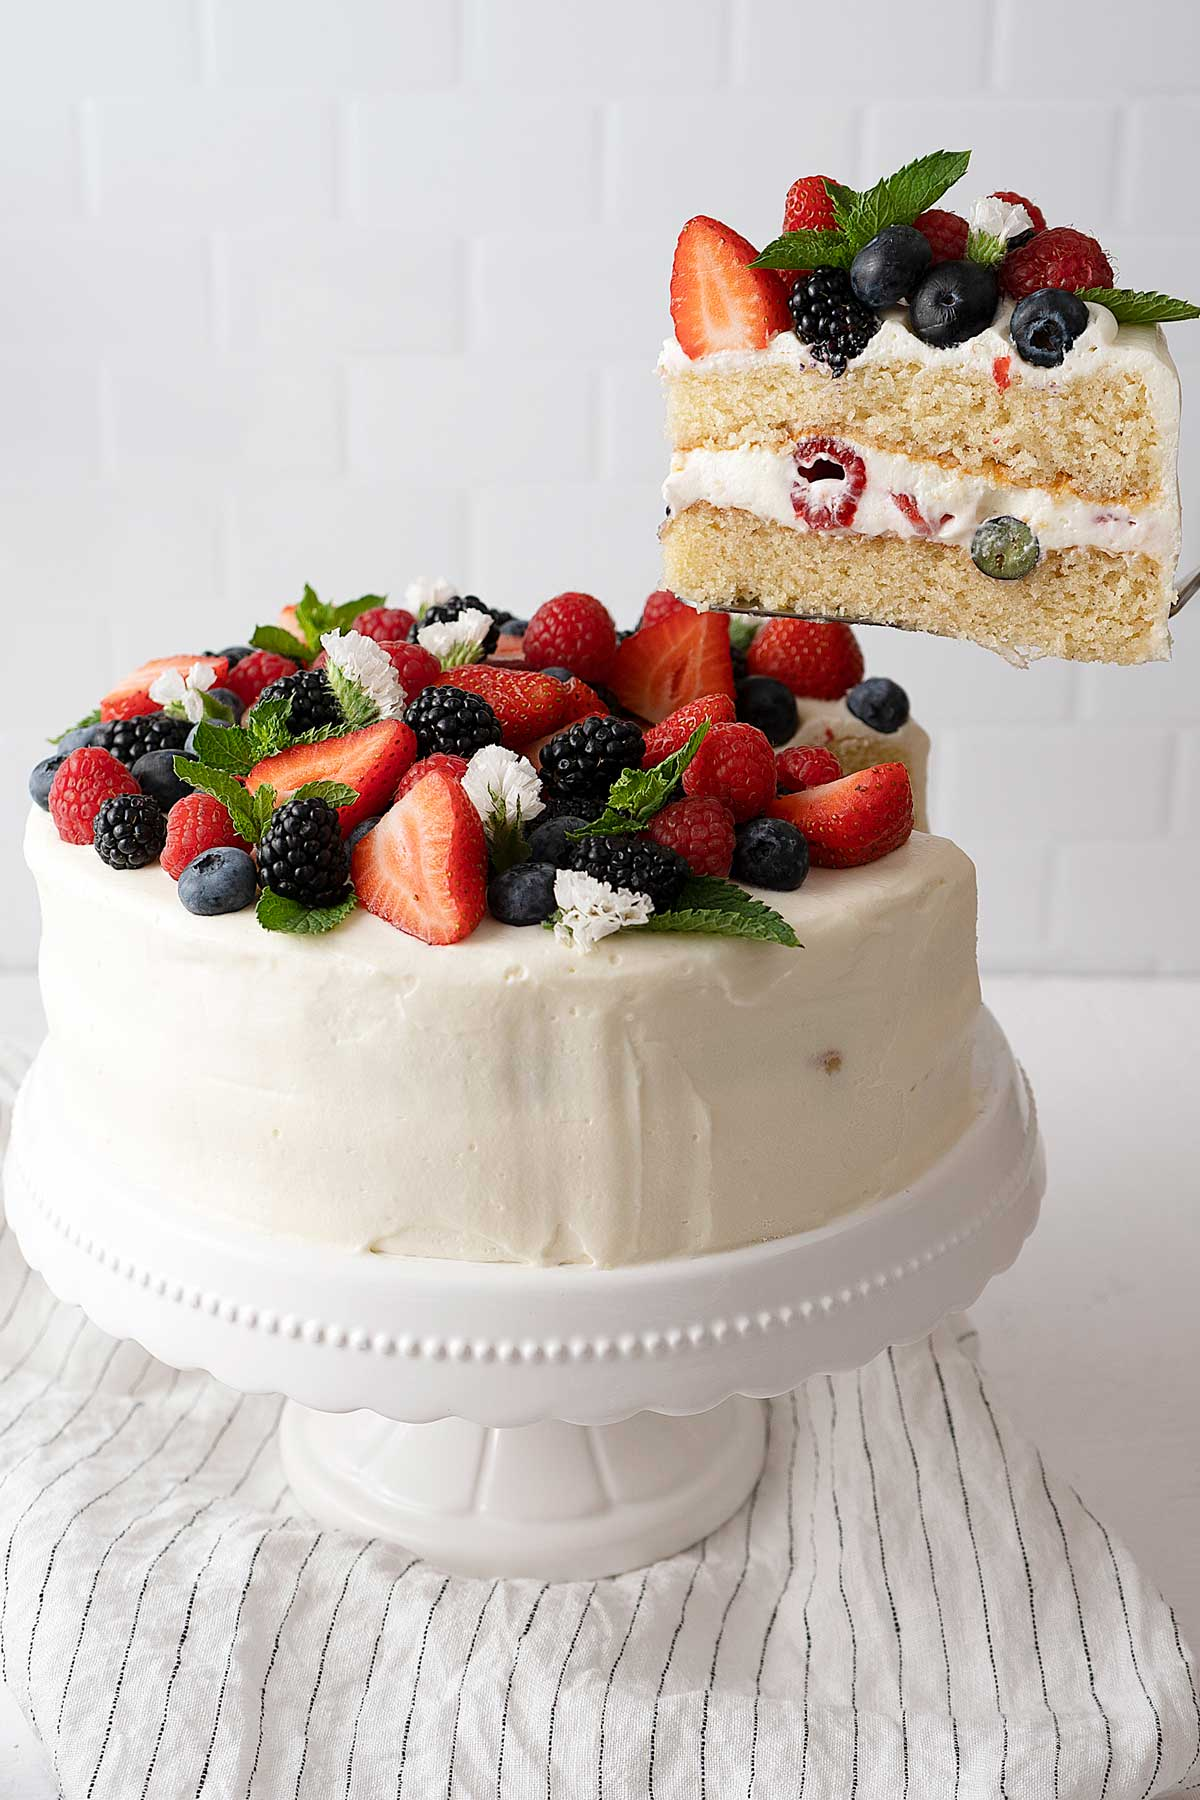 Serving a berry cake with white frosting